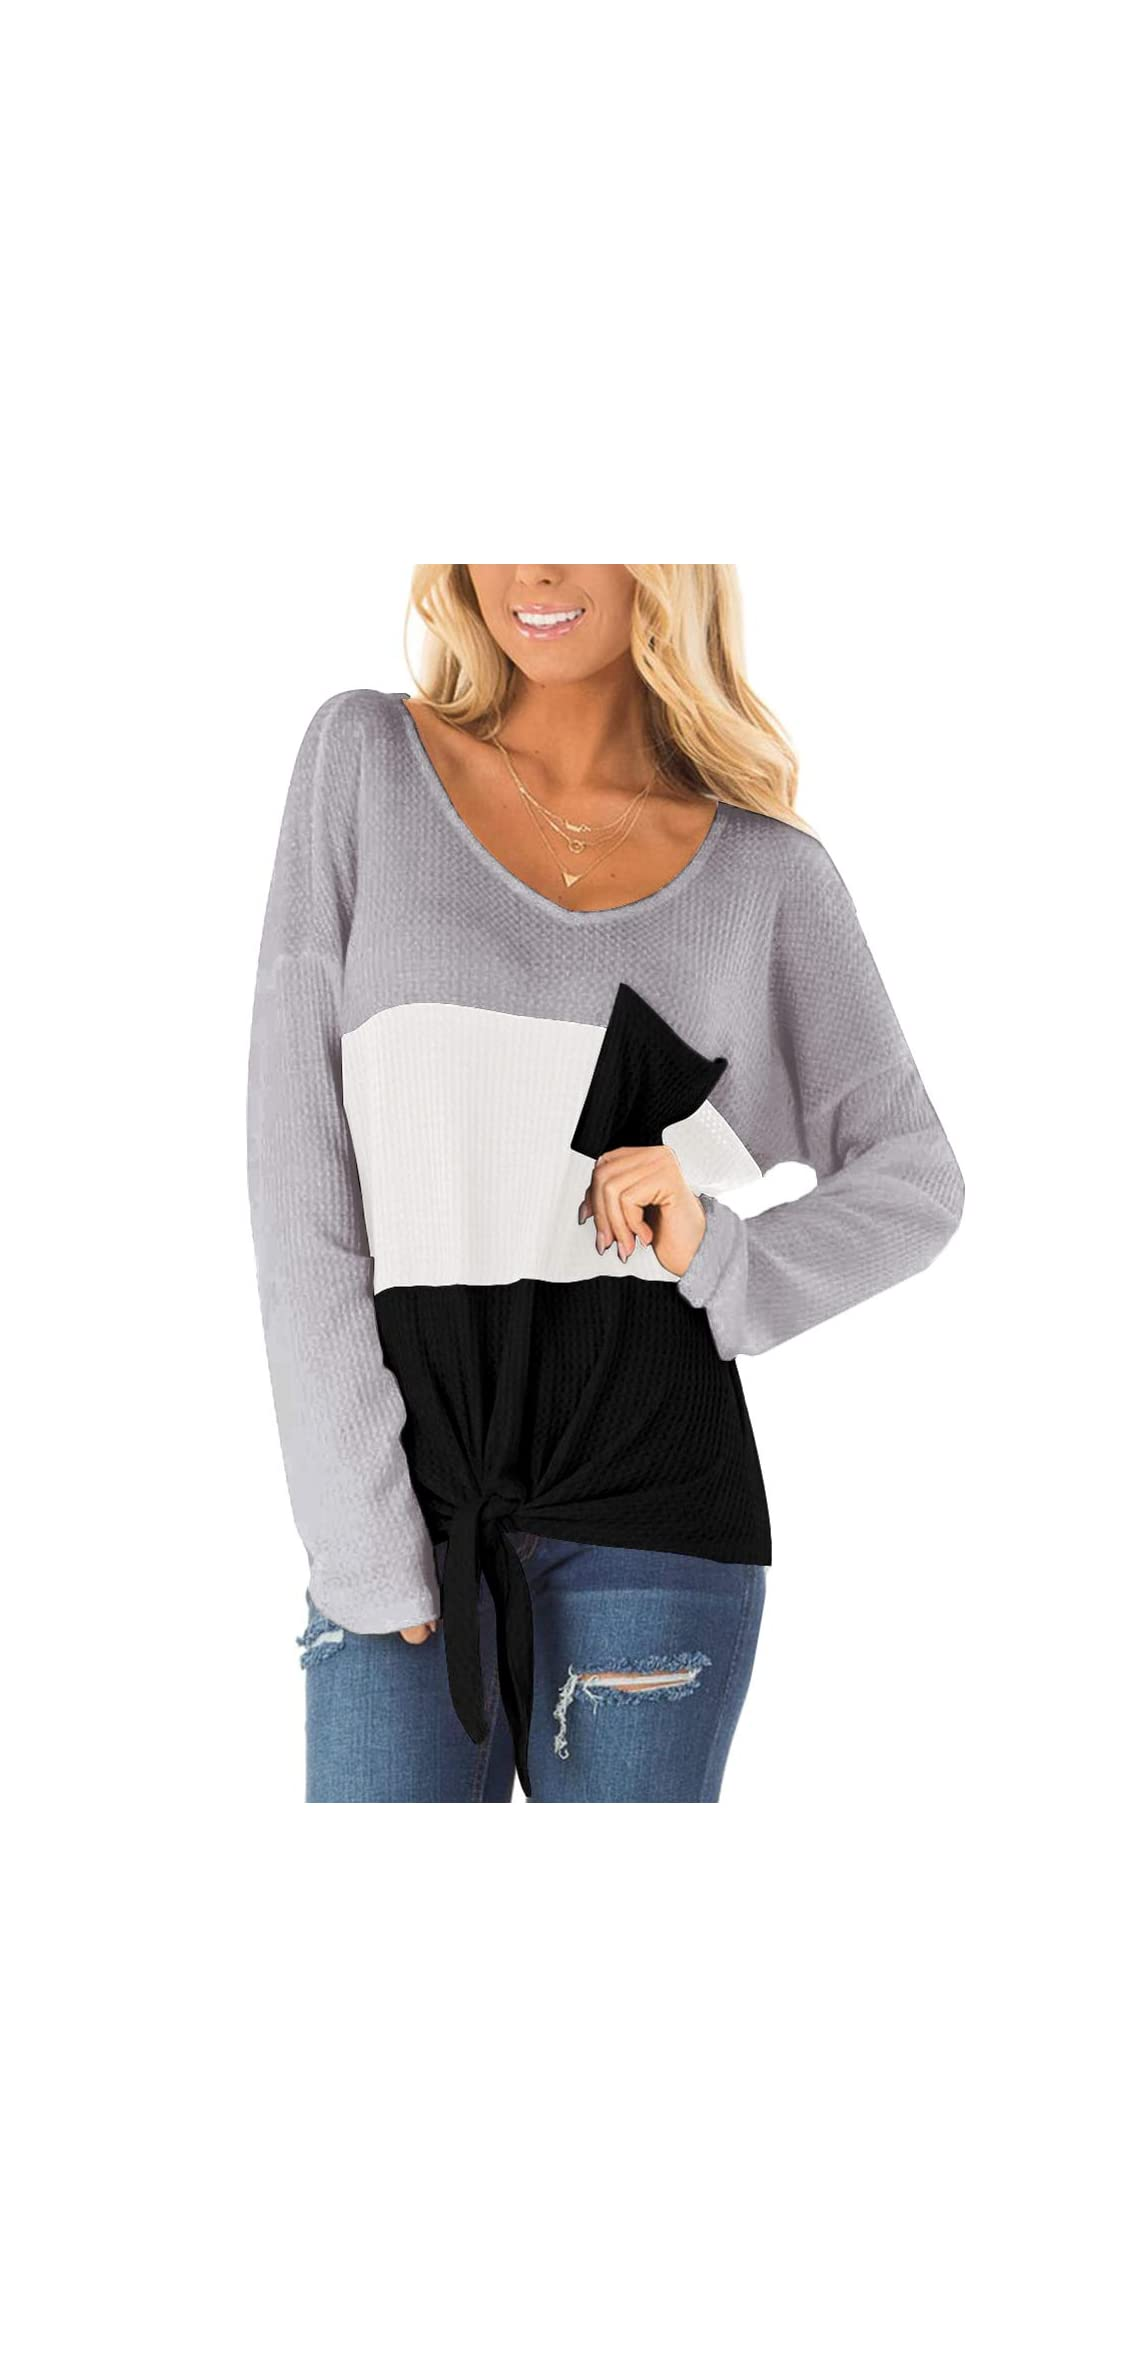 Womens Waffle Knit Tops V-neck Casual T Shirt Tie Knot